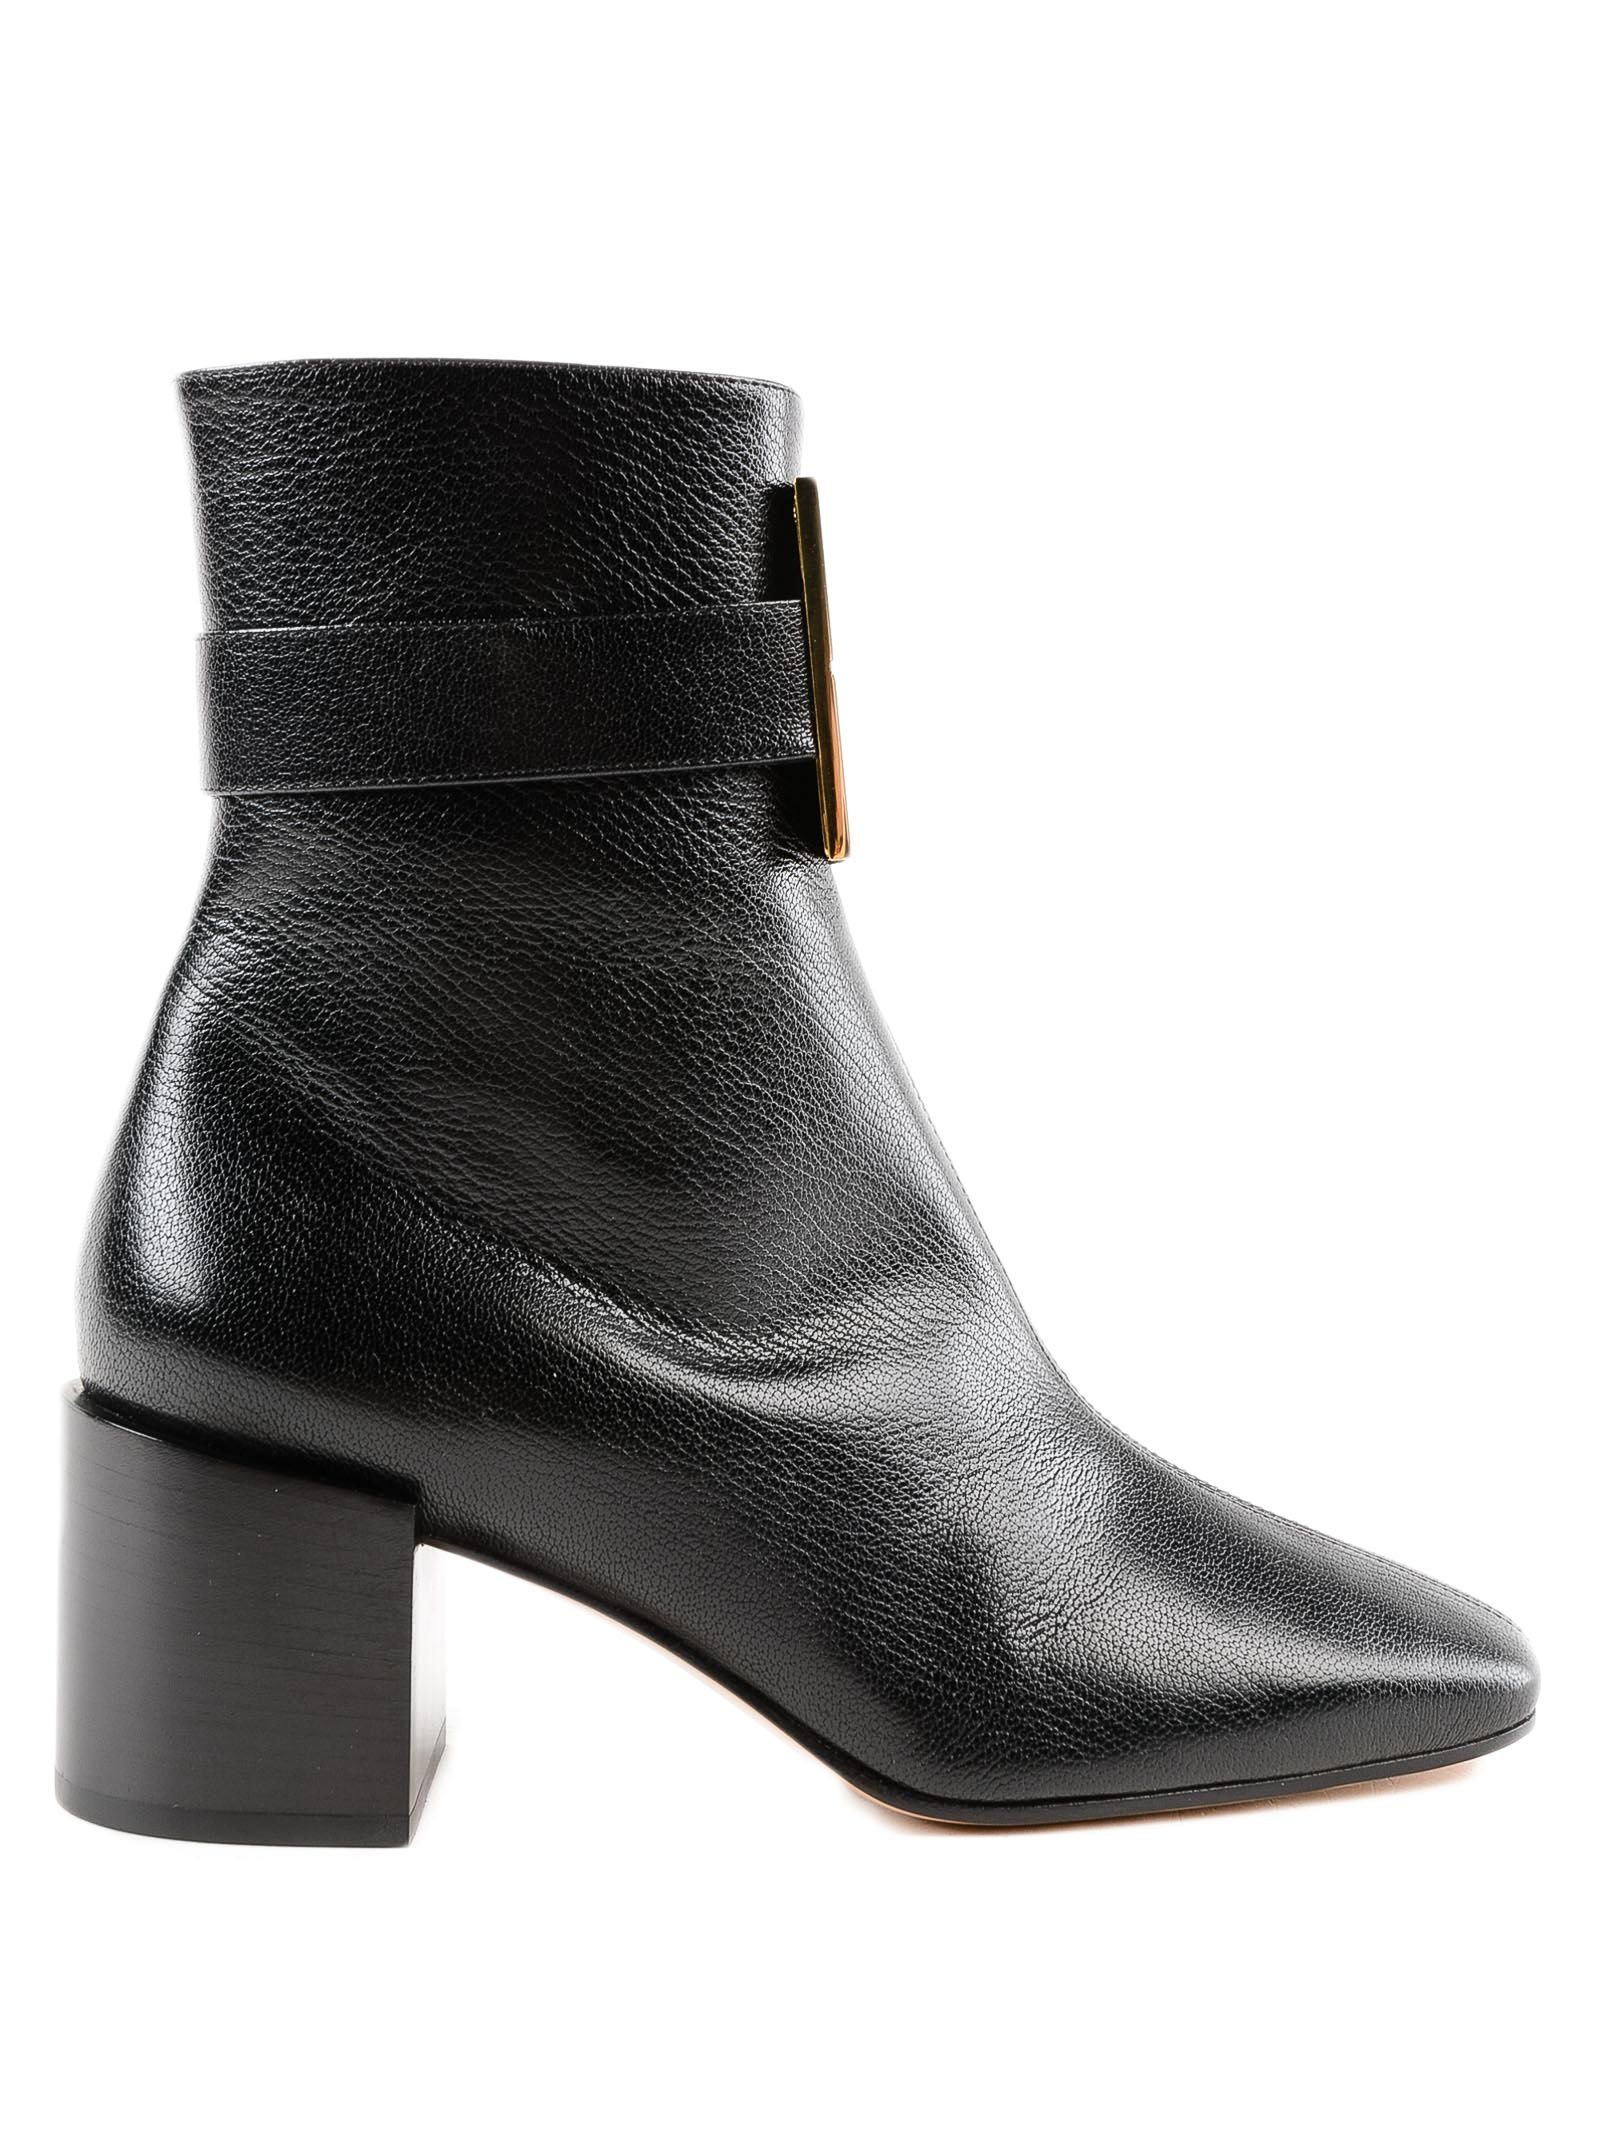 Givenchy 4g Ankle Boots